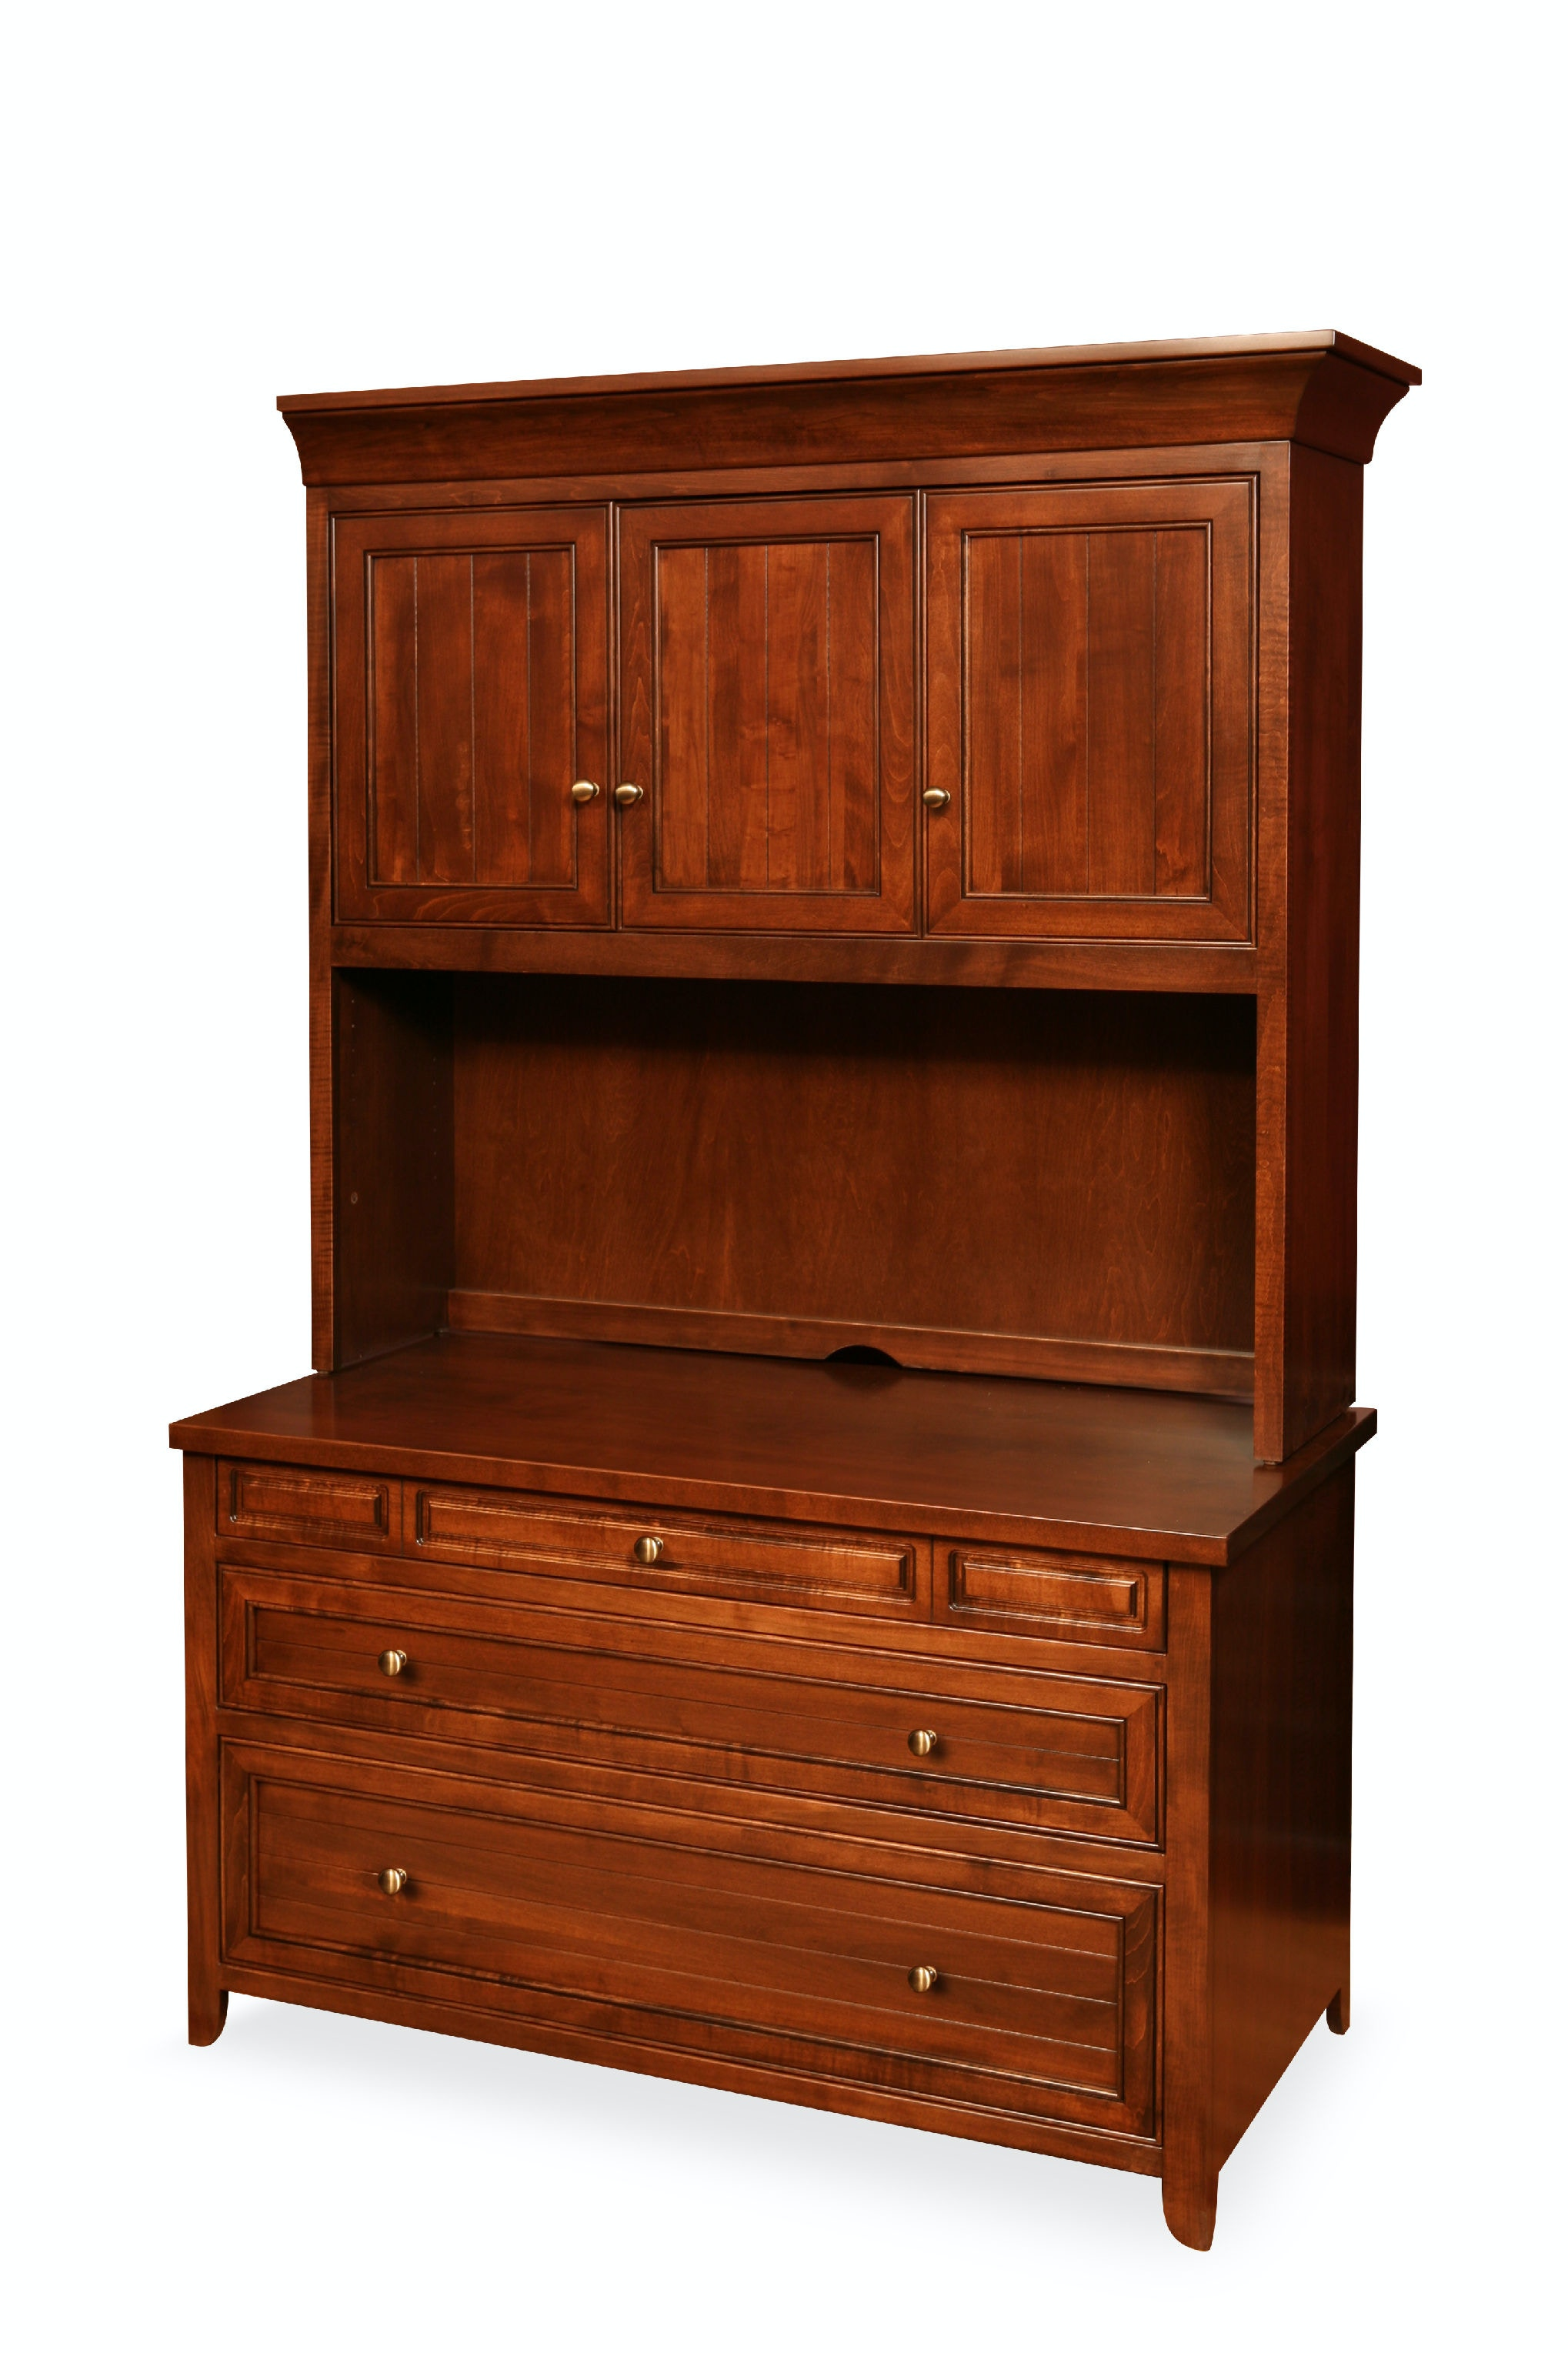 30 36. Drawer Cabinet With Hutch Top